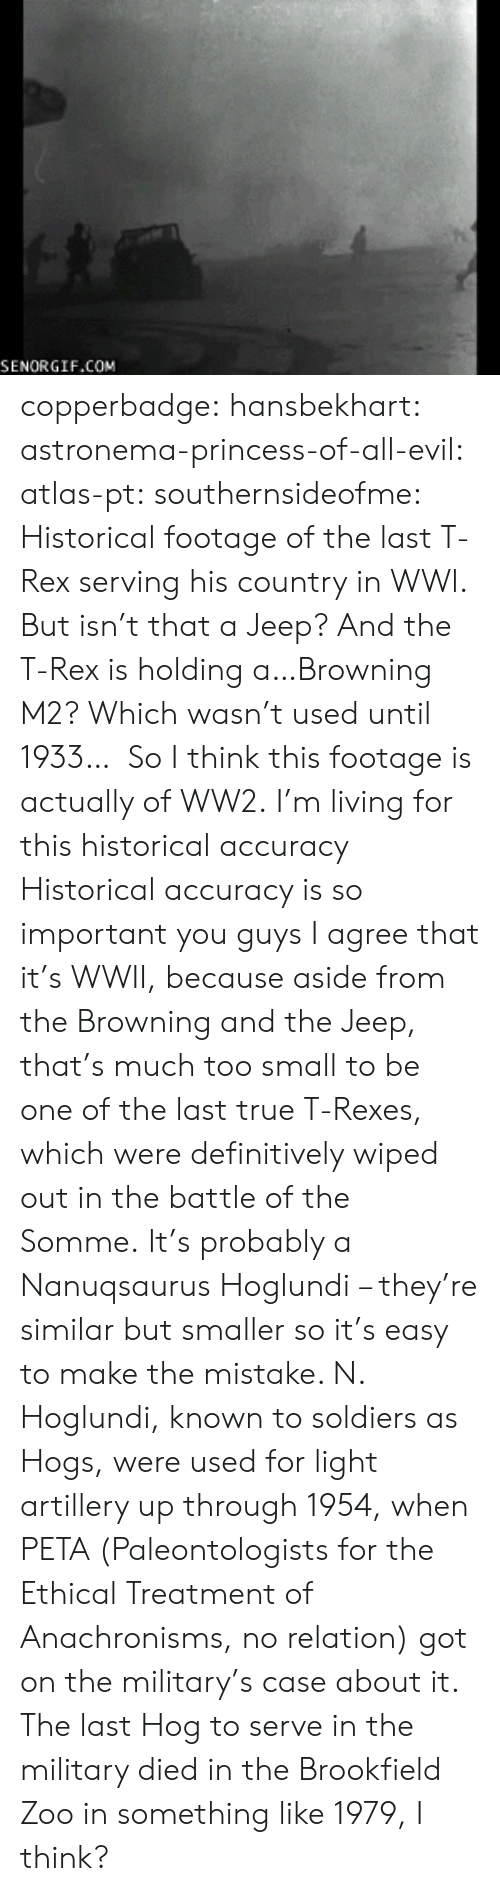 brookfield: SENORGIF.COM copperbadge:  hansbekhart:  astronema-princess-of-all-evil:  atlas-pt:  southernsideofme:  Historical footage of the last T-Rex serving his country in WWl.  But isn't that a Jeep? And the T-Rex is holding a…Browning M2? Which wasn't used until 1933… So I think this footage is actually of WW2.  I'm living for this historical accuracy  Historical accuracy is so important you guys   I agree that it's WWII, because aside from the Browning and the Jeep, that's much too small to be one of the last true T-Rexes, which were definitively wiped out in the battle of the Somme.It's probably a Nanuqsaurus Hoglundi– they're similar but smaller so it's easy to make the mistake. N. Hoglundi, known to soldiers as Hogs, were used for light artillery up through 1954, when PETA (Paleontologists for the Ethical Treatment of Anachronisms, no relation) got on the military's case about it. The last Hog to serve in the military died in the Brookfield Zoo in something like 1979, I think?